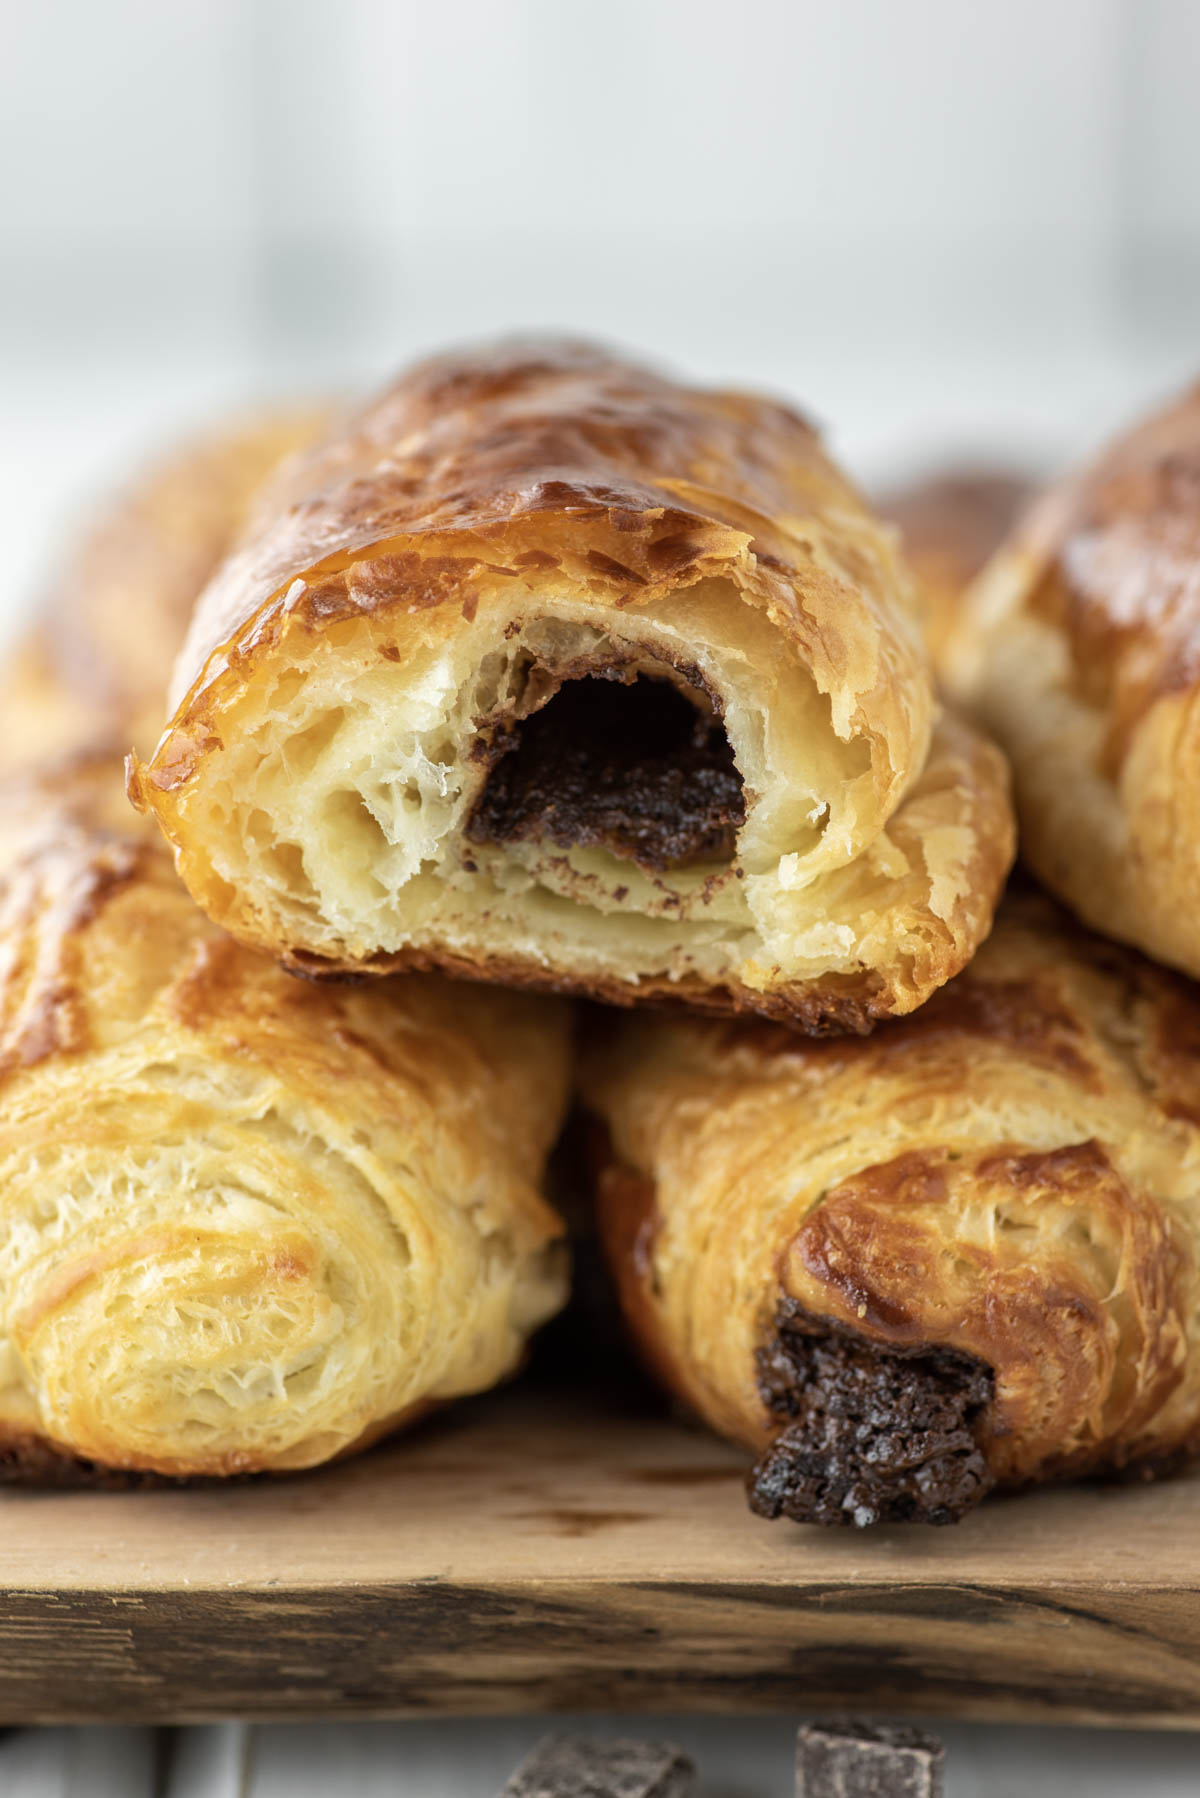 eaten chocolate croissant stacked on other croissants